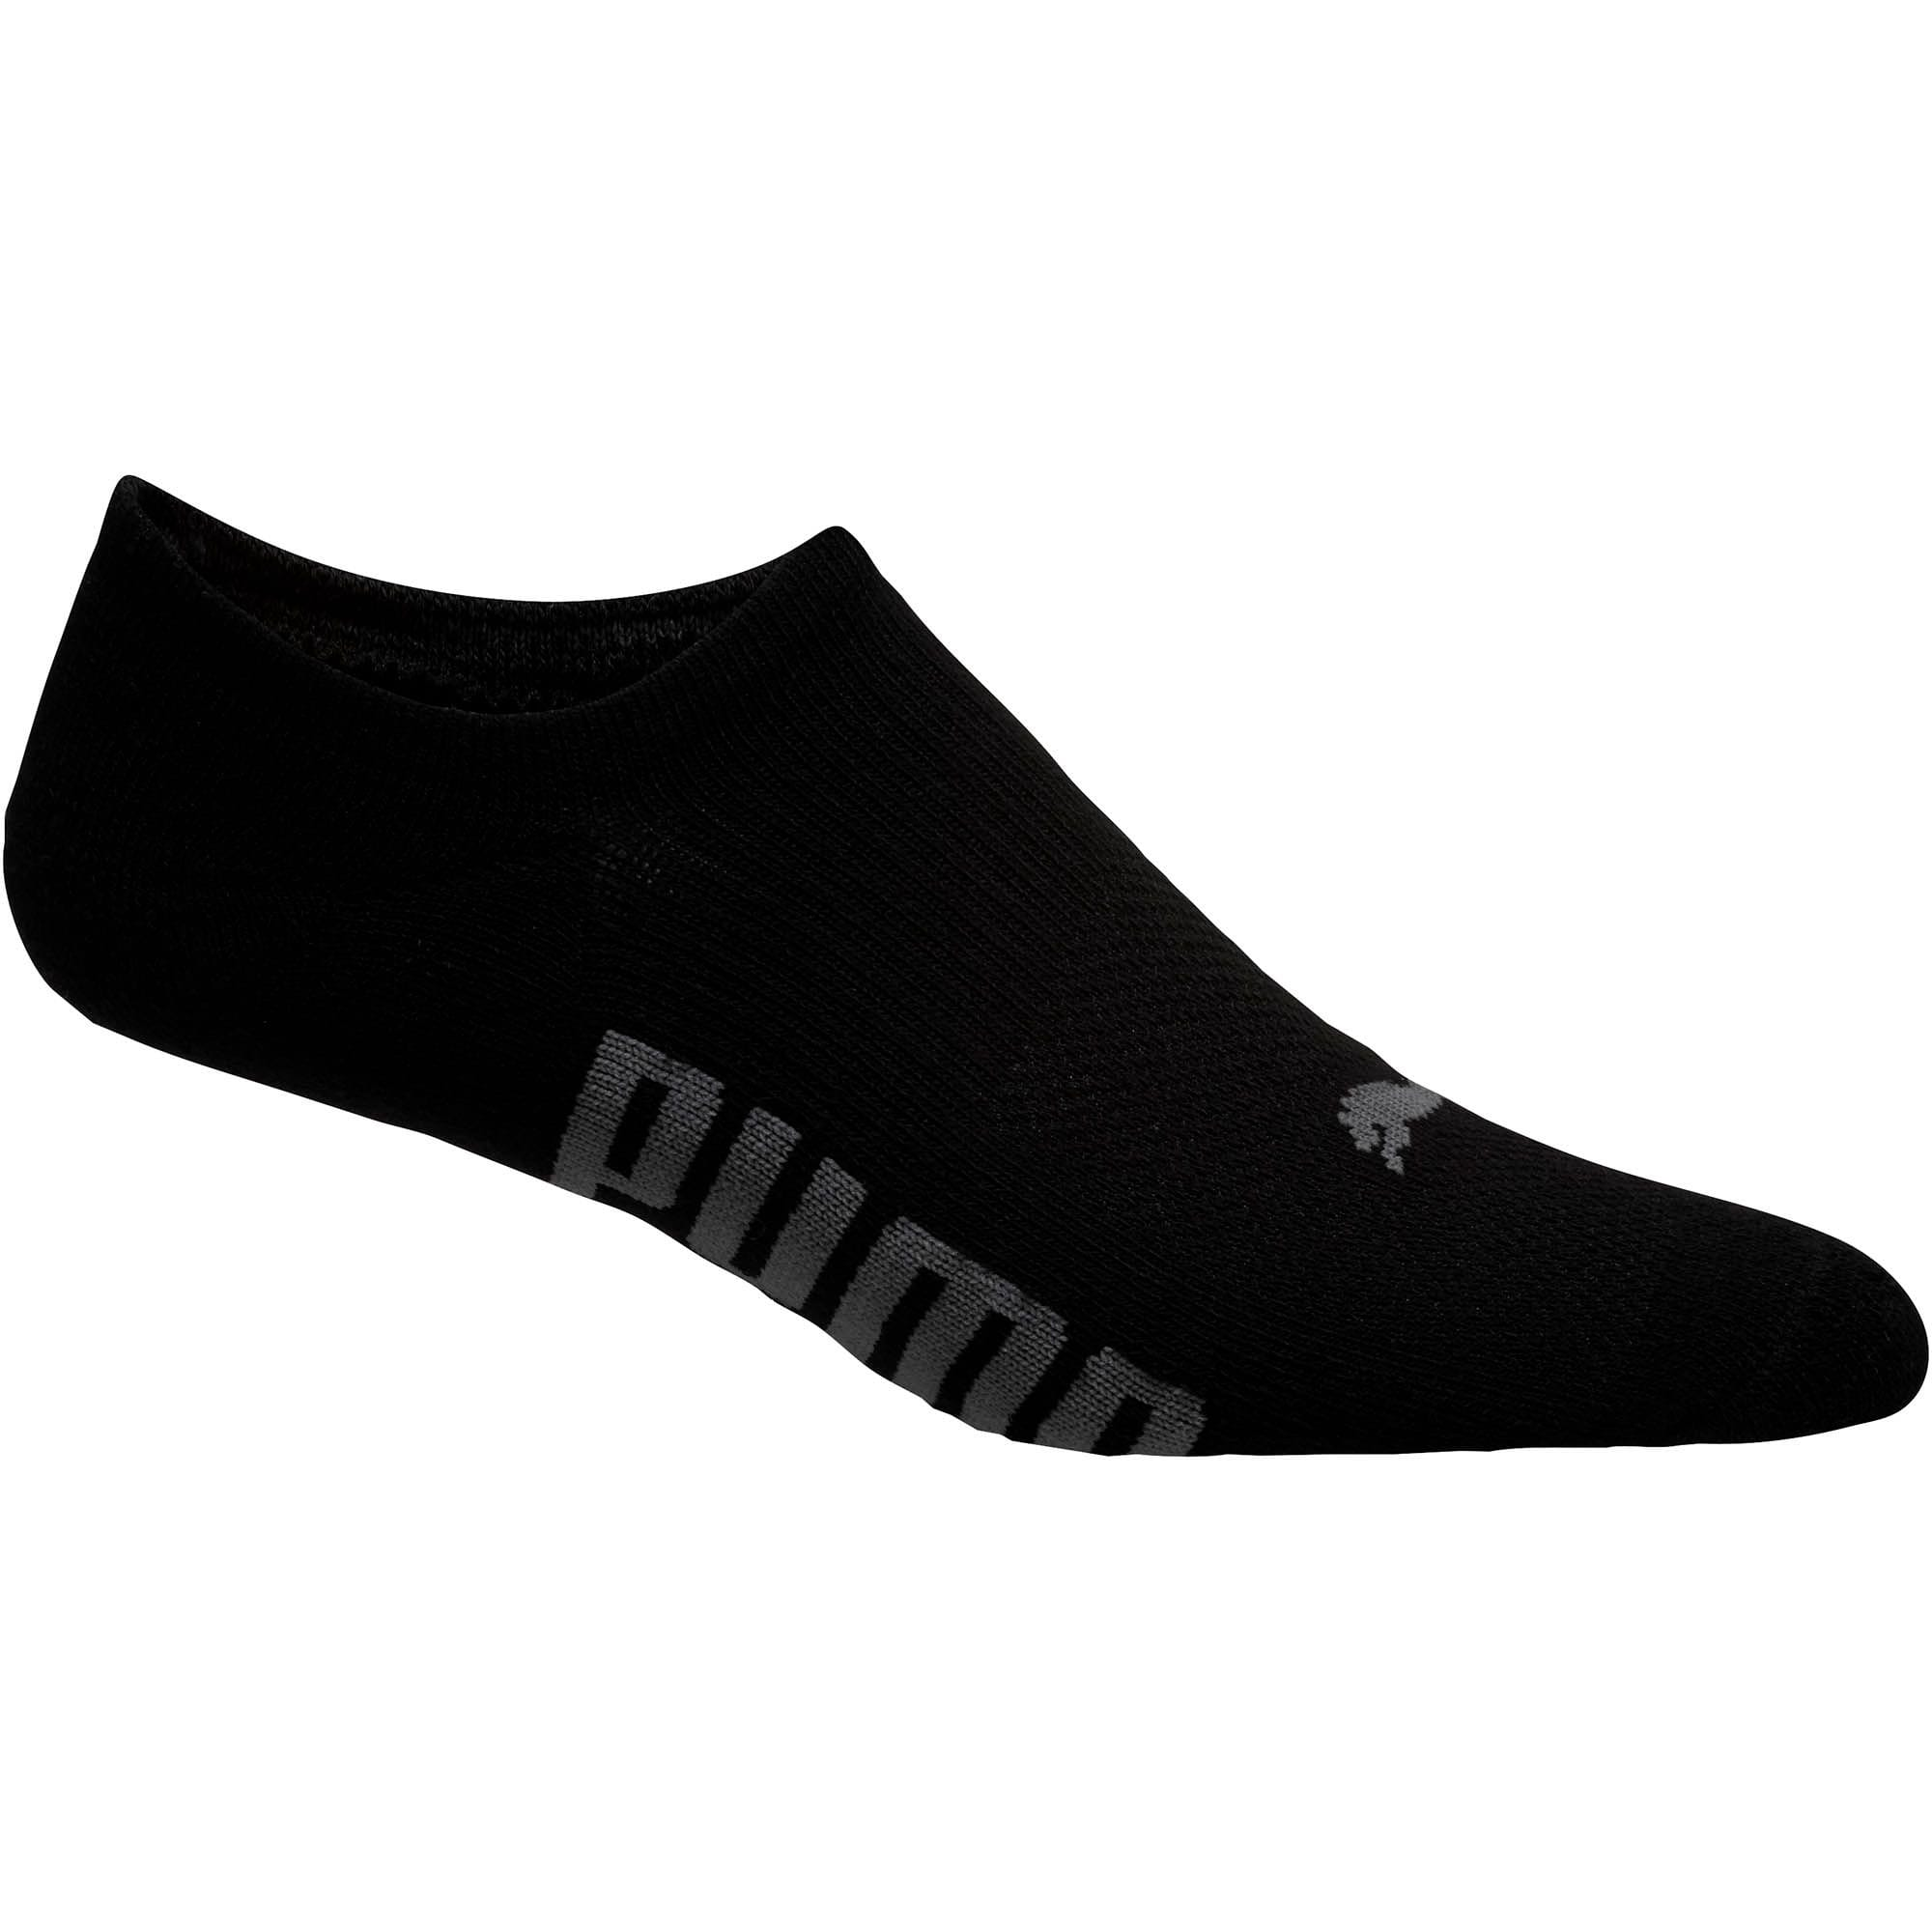 Men's Invisible No Show Socks [3 Pack]